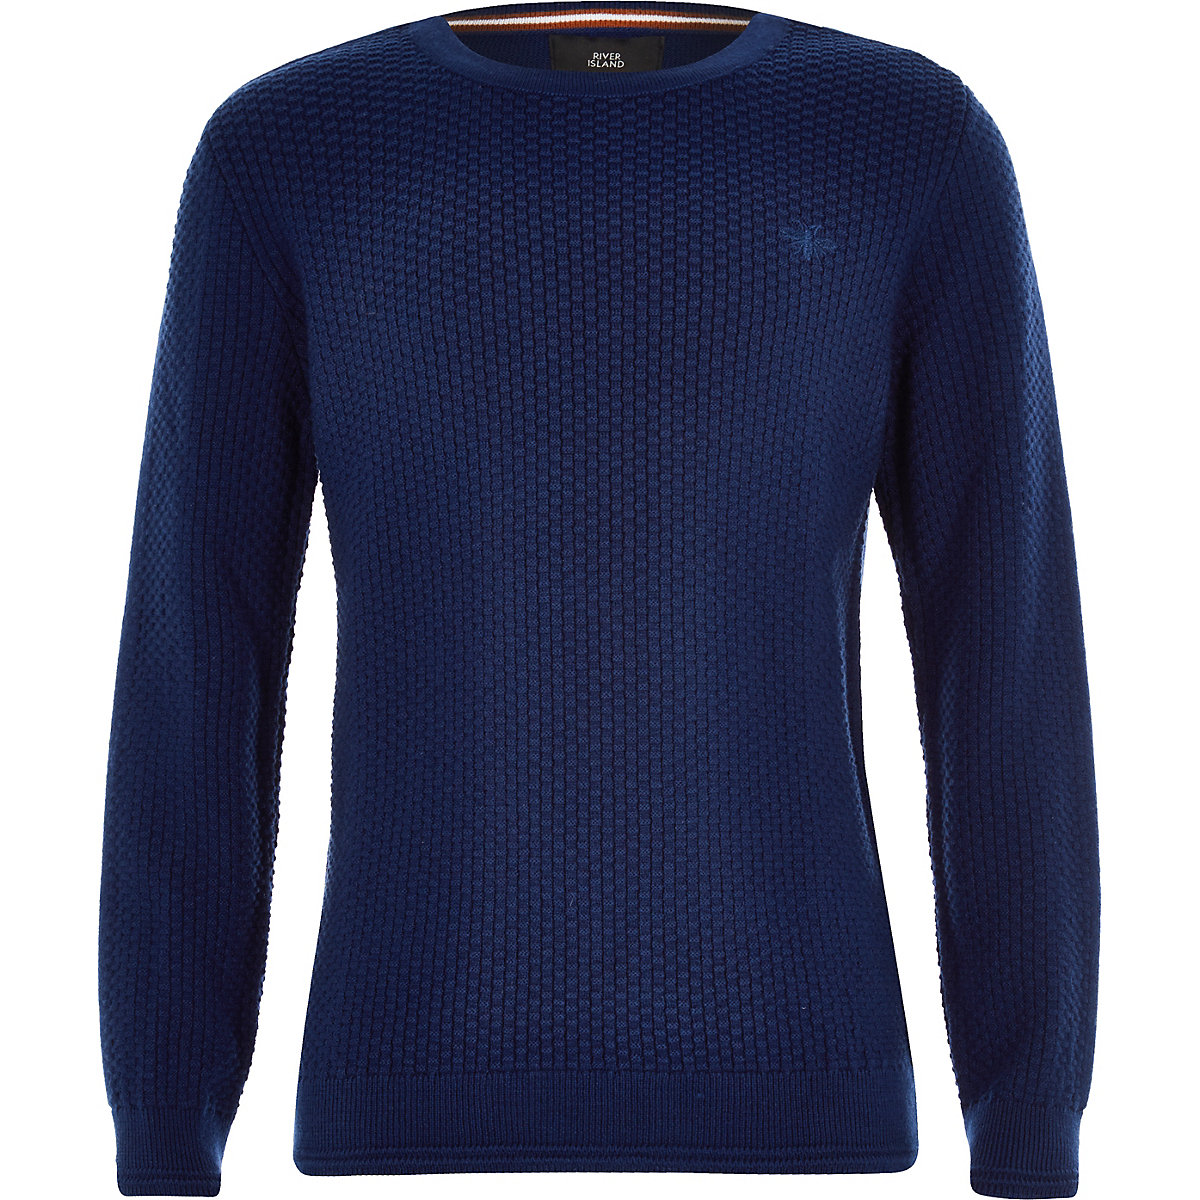 Boys blue knit wasp embroidered jumper